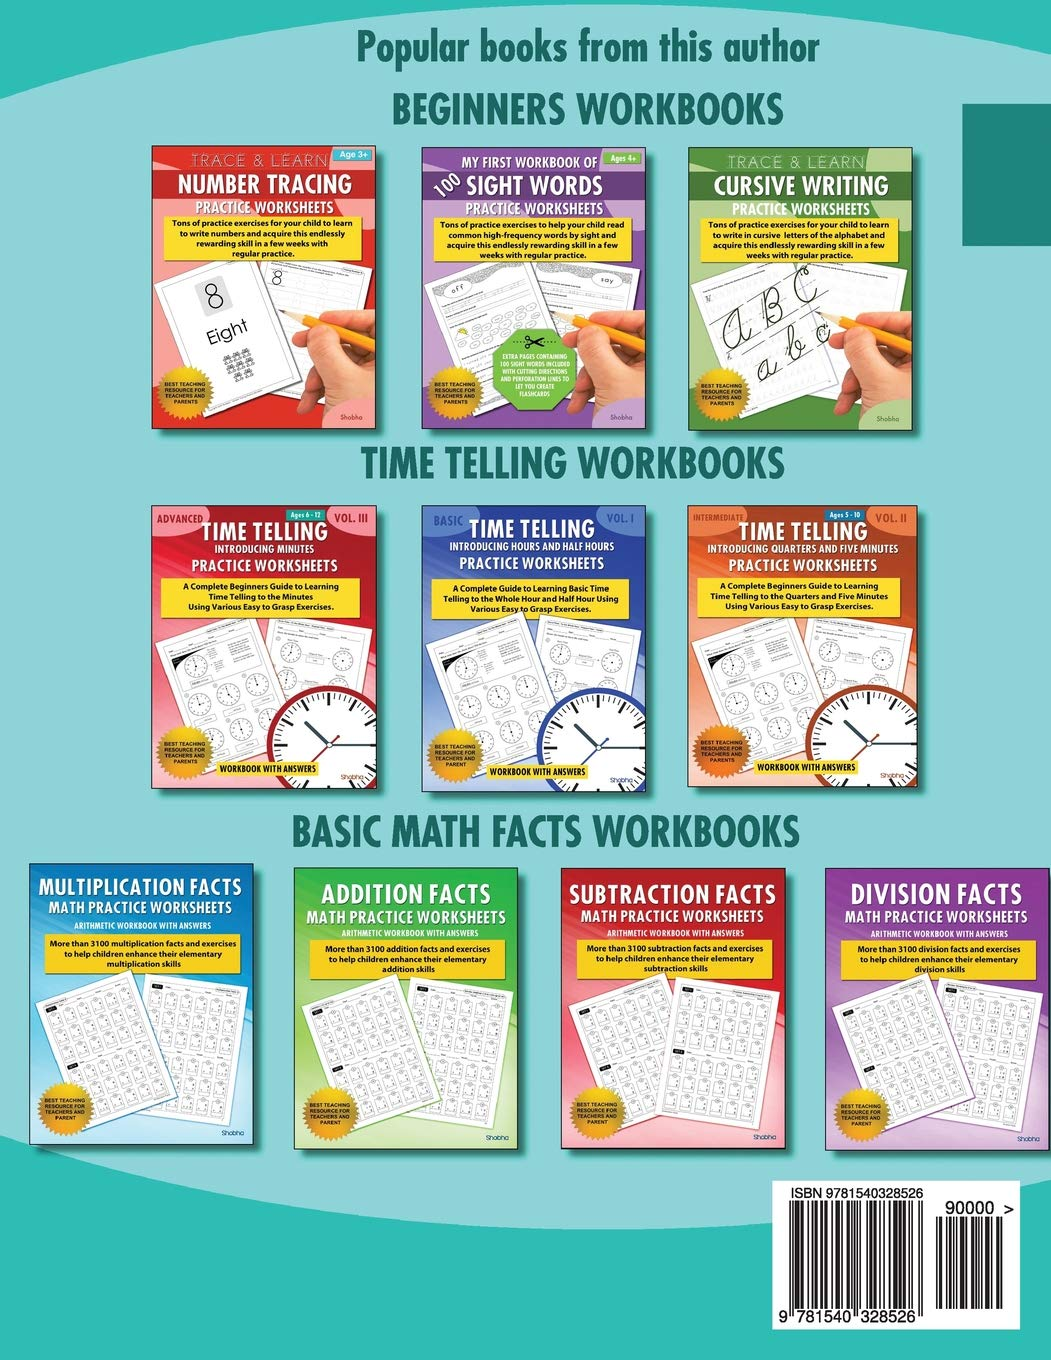 IXL Math   Learn math online besides s To You Lesson Plans The Mailbox Valentines Day Education as well The Education Center Inc Worksheets Collection Of Math Download Them likewise PDF  Using an Activity Worksheet to Remediate Students' Alternative moreover Large Printable Numbers 1 Math Worksheets For Kindergarteners Free moreover Search  safety   The Mailbox also  furthermore Math 2 Digit Addition And Subtraction Worksheets   antihrap in addition  furthermore Education Math Worksheets Grade 7 Geometry – atraxmorgue further the education center inc worksheets – ila club likewise Amazon    Trace   Learn Letters Alphabet Tracing Workbook Practice in addition The Education Center Inc Worksheets The Education Center Math also Figurative Language Worksheets   Education moreover Learn about the Earth's Layers   Worksheet   Education furthermore CVC Worksheets   Short U Activities   CVC Words Worksheets. on the education center inc worksheets